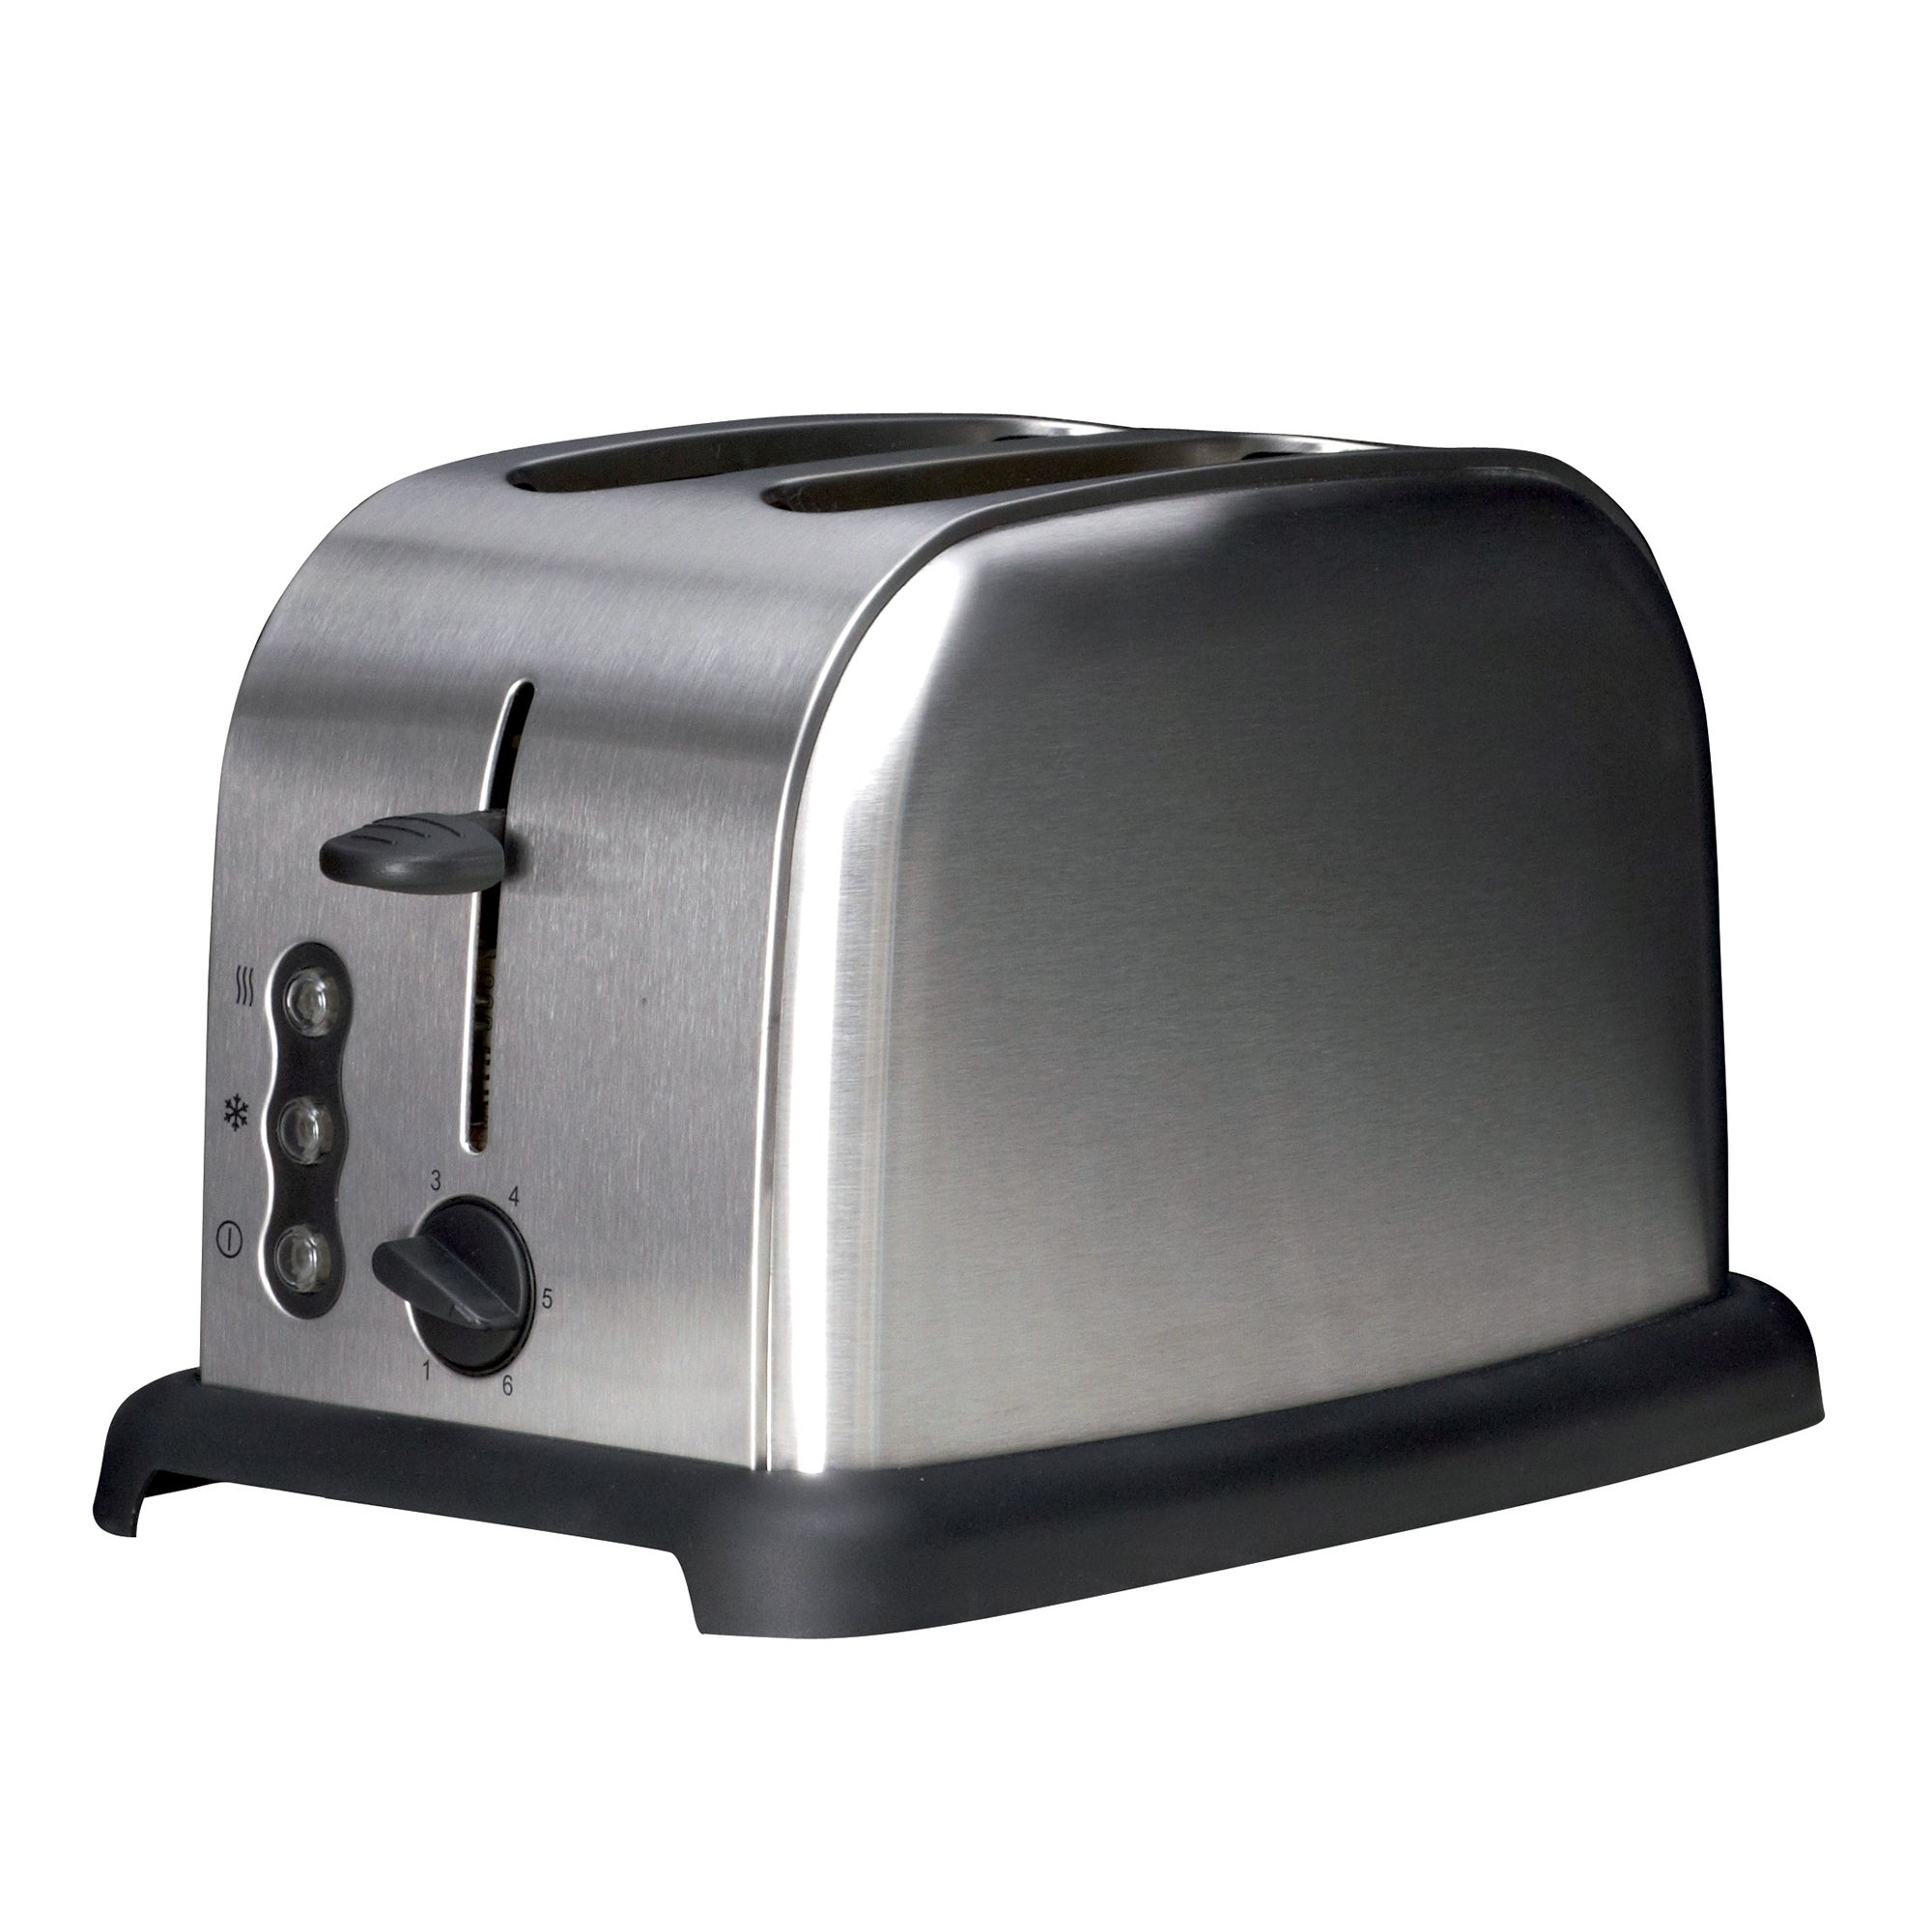 Stainless Steel 2 Slice Toaster